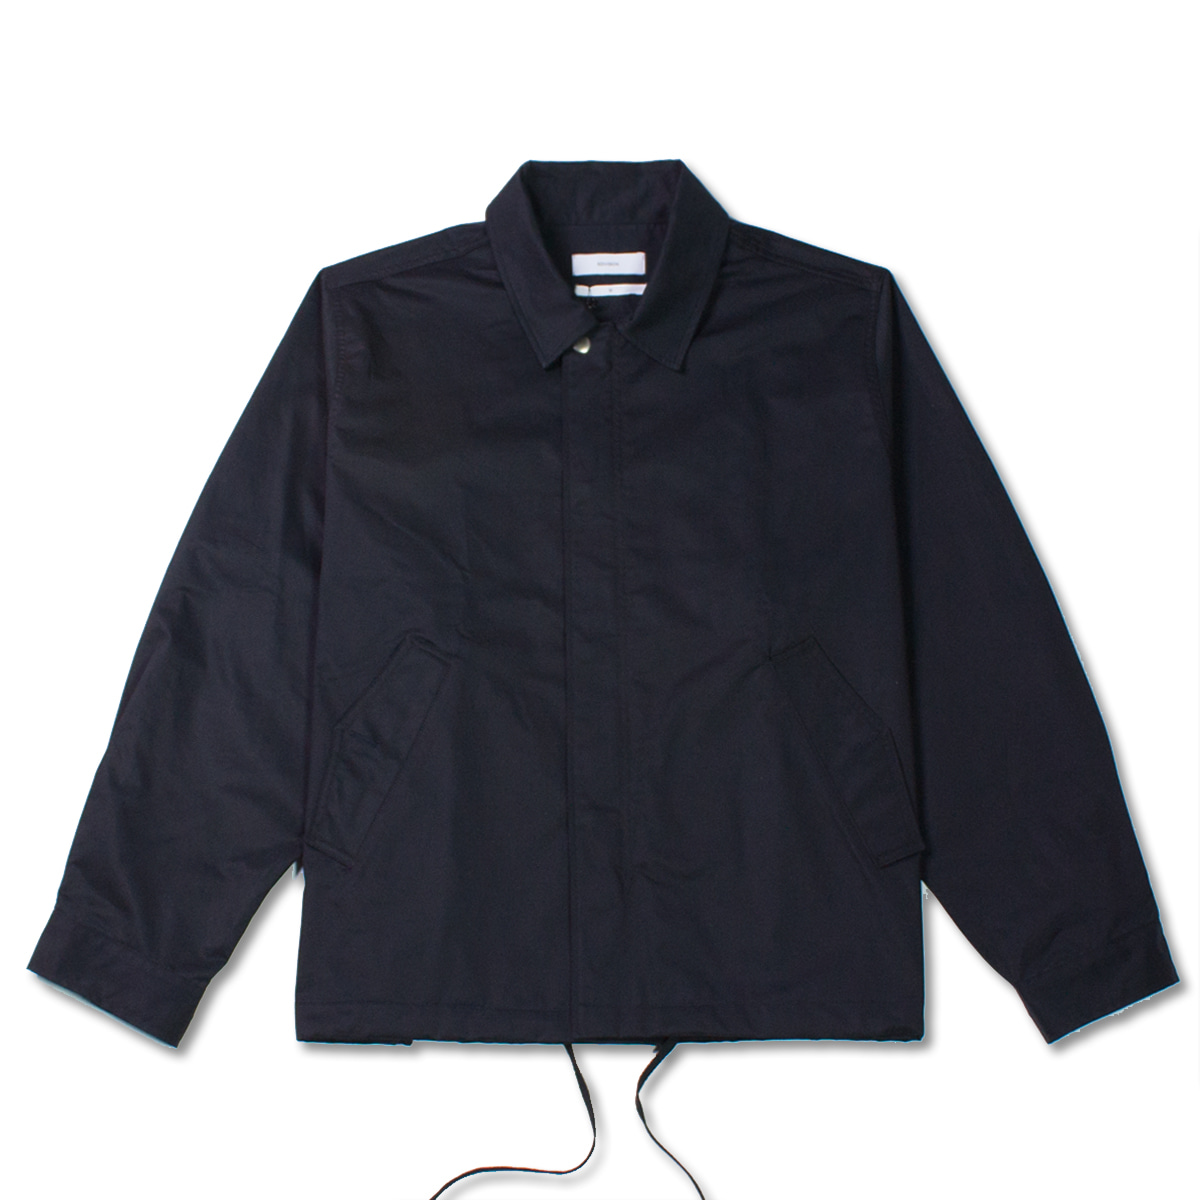 [8DIVISION] OVERSIZED DRIZZLER JACKET 'DARK NAVY'